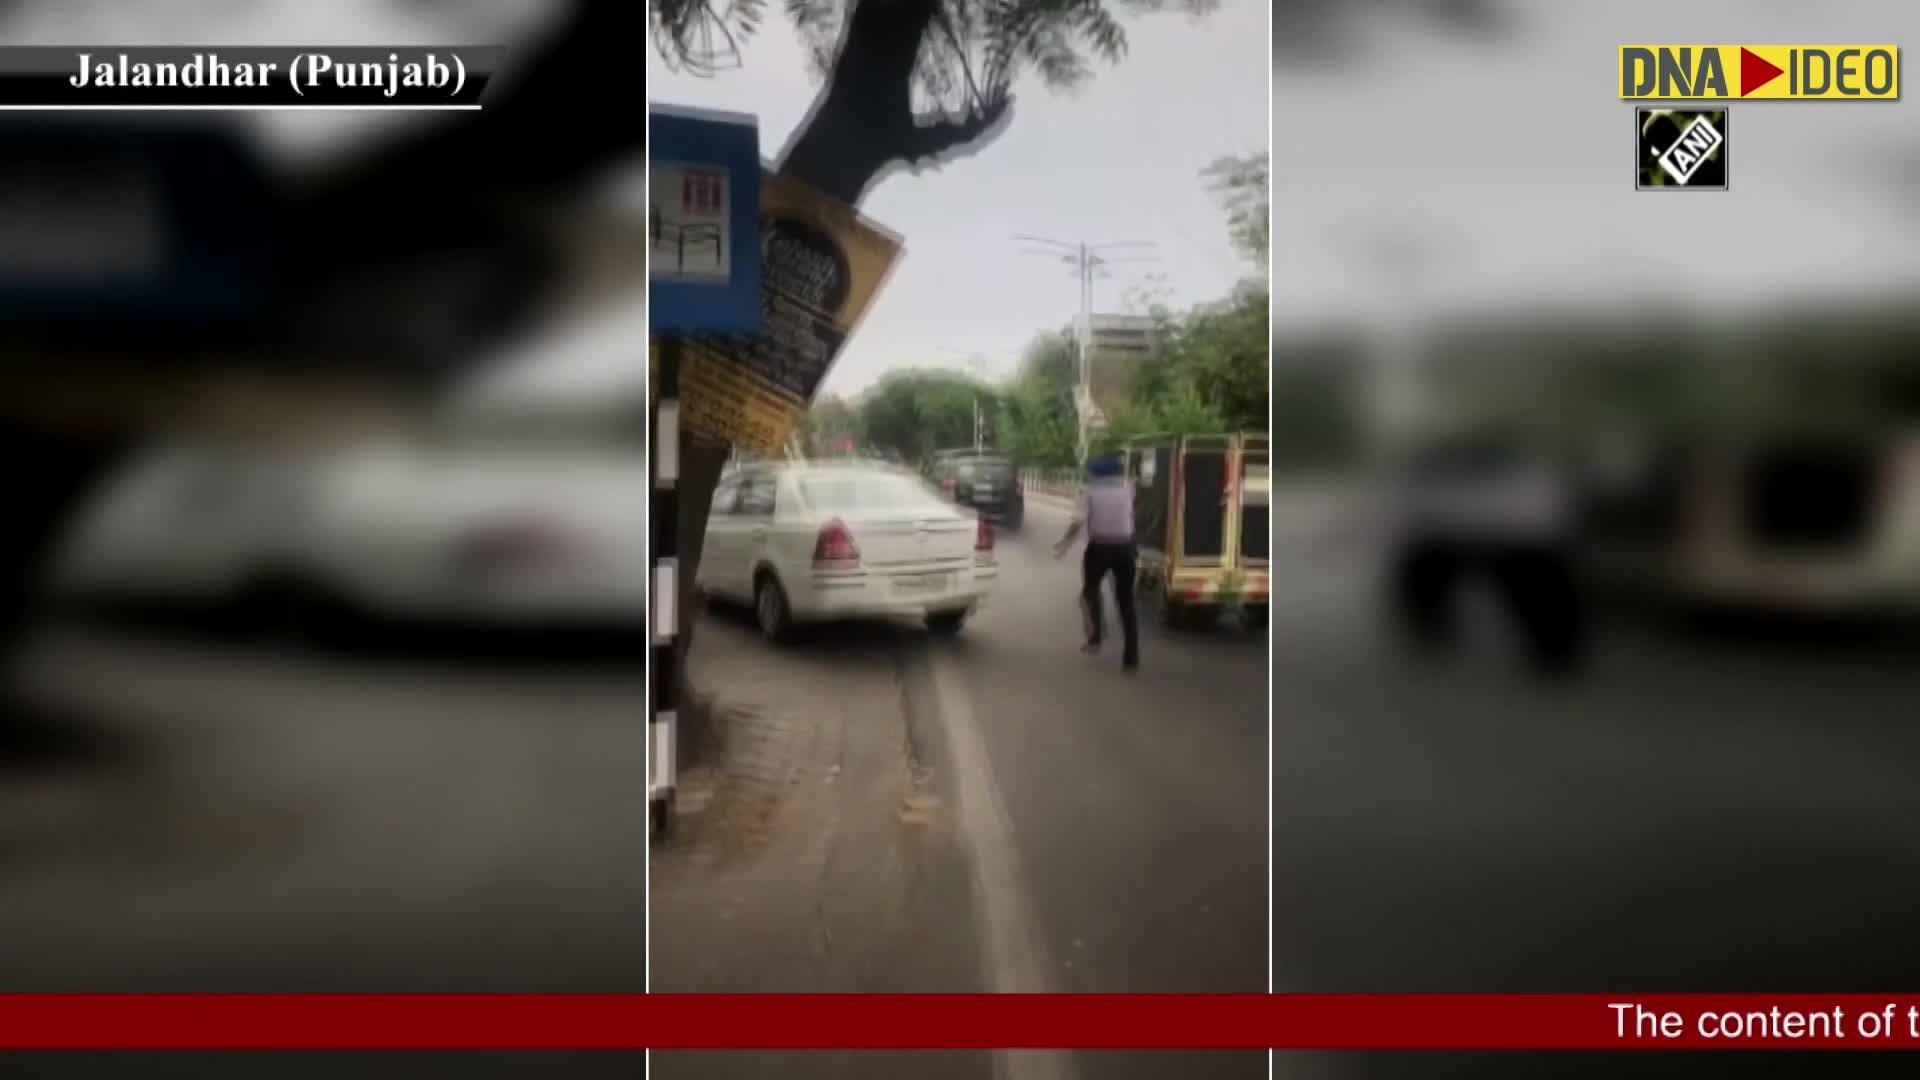 Watch Man Drags Police Officer On Bonnet Of His Car In Jalandhar Detained